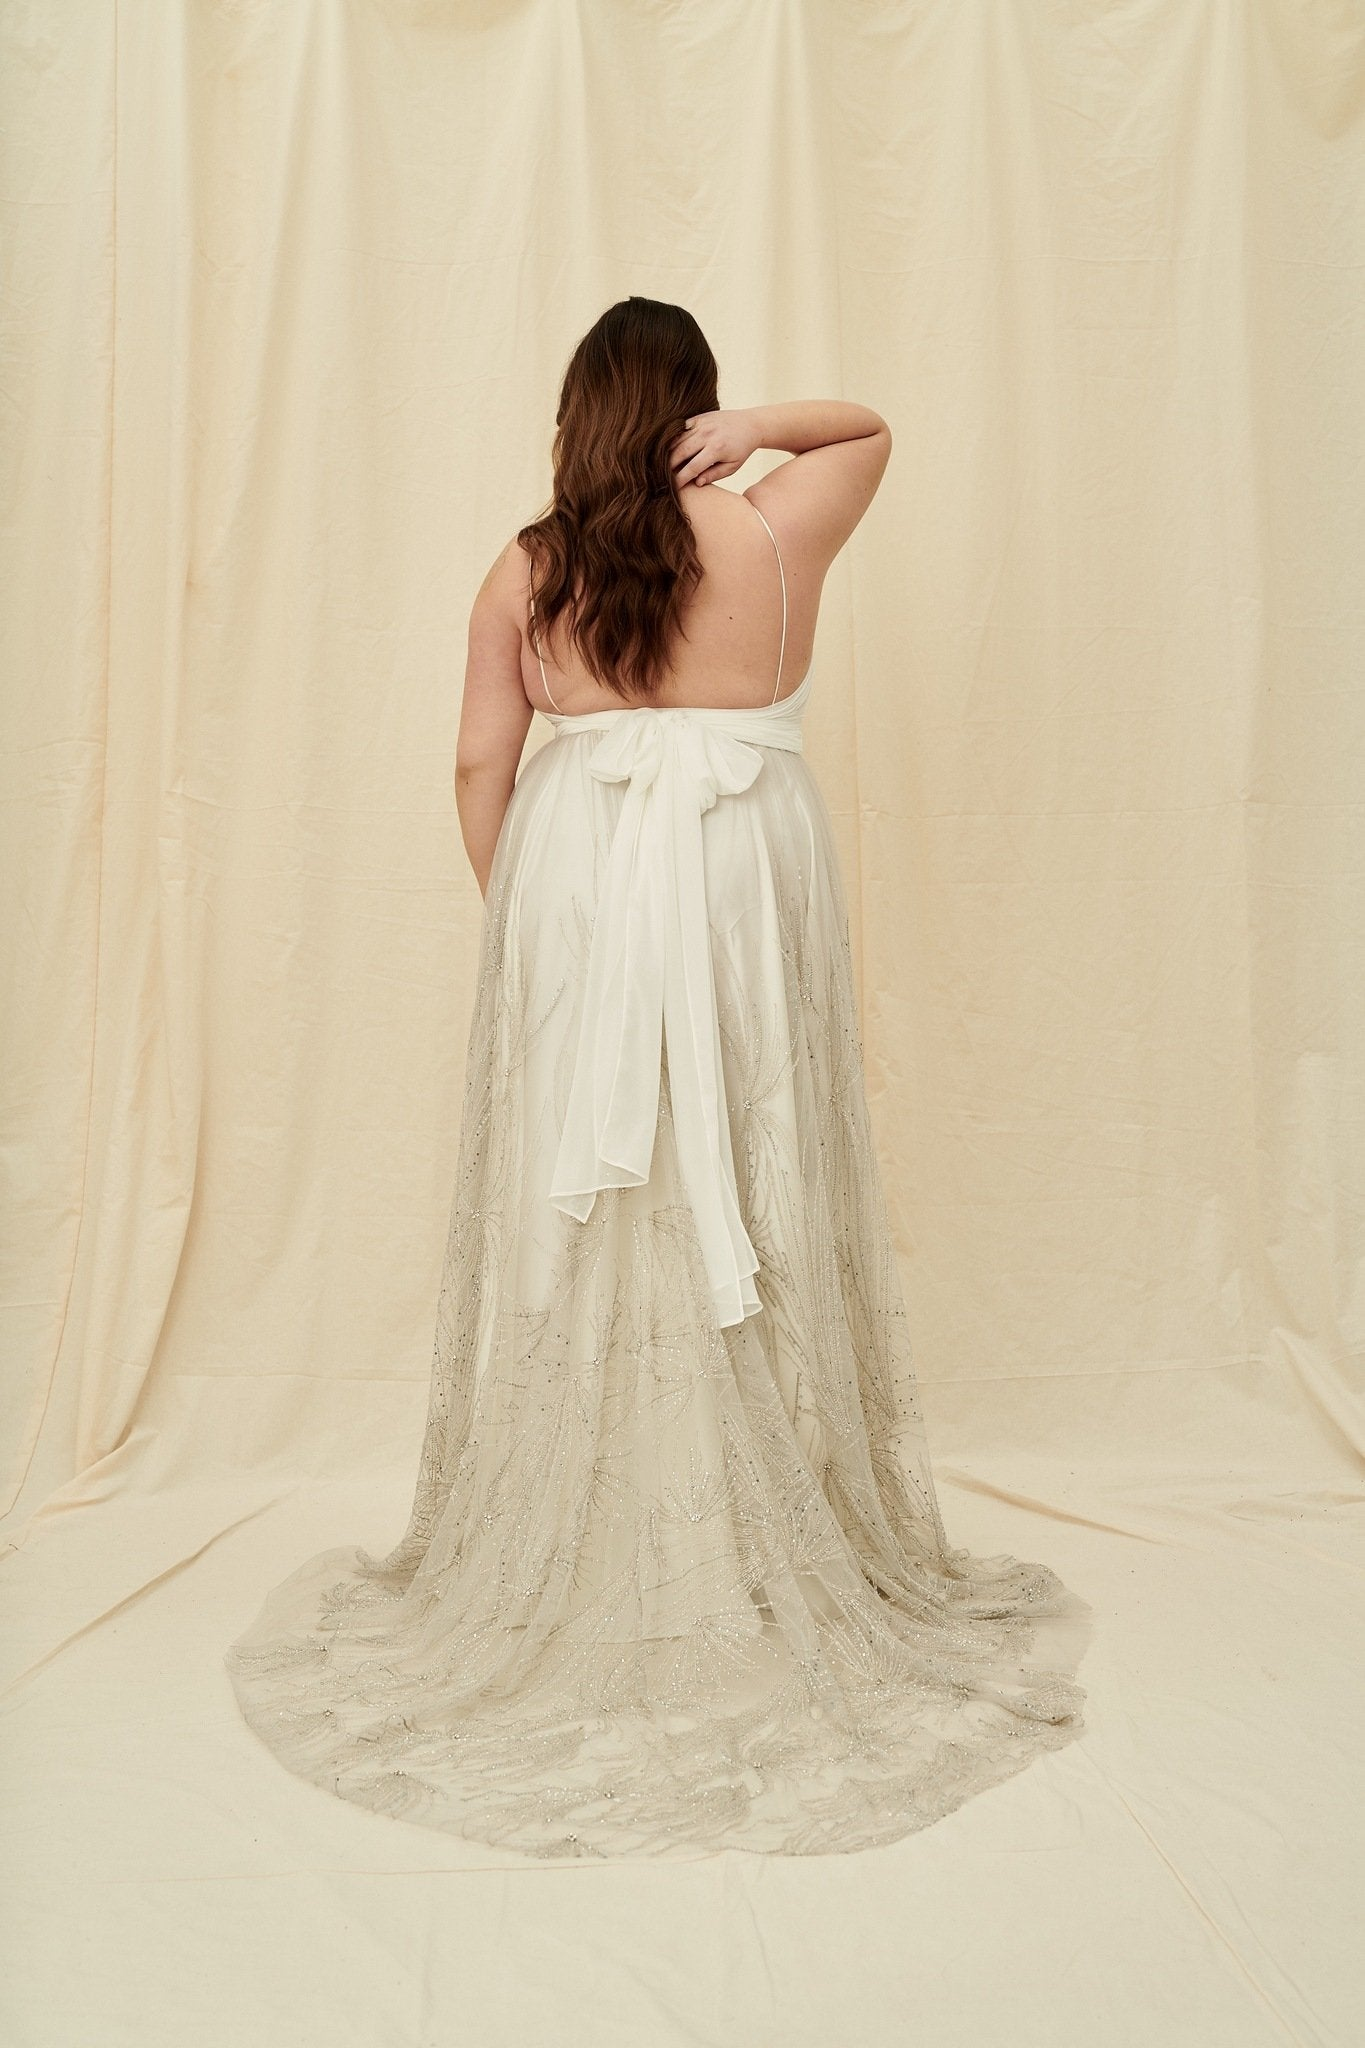 Plus size vintage-inspired wedding dress with silver beading, back ties, and a long train